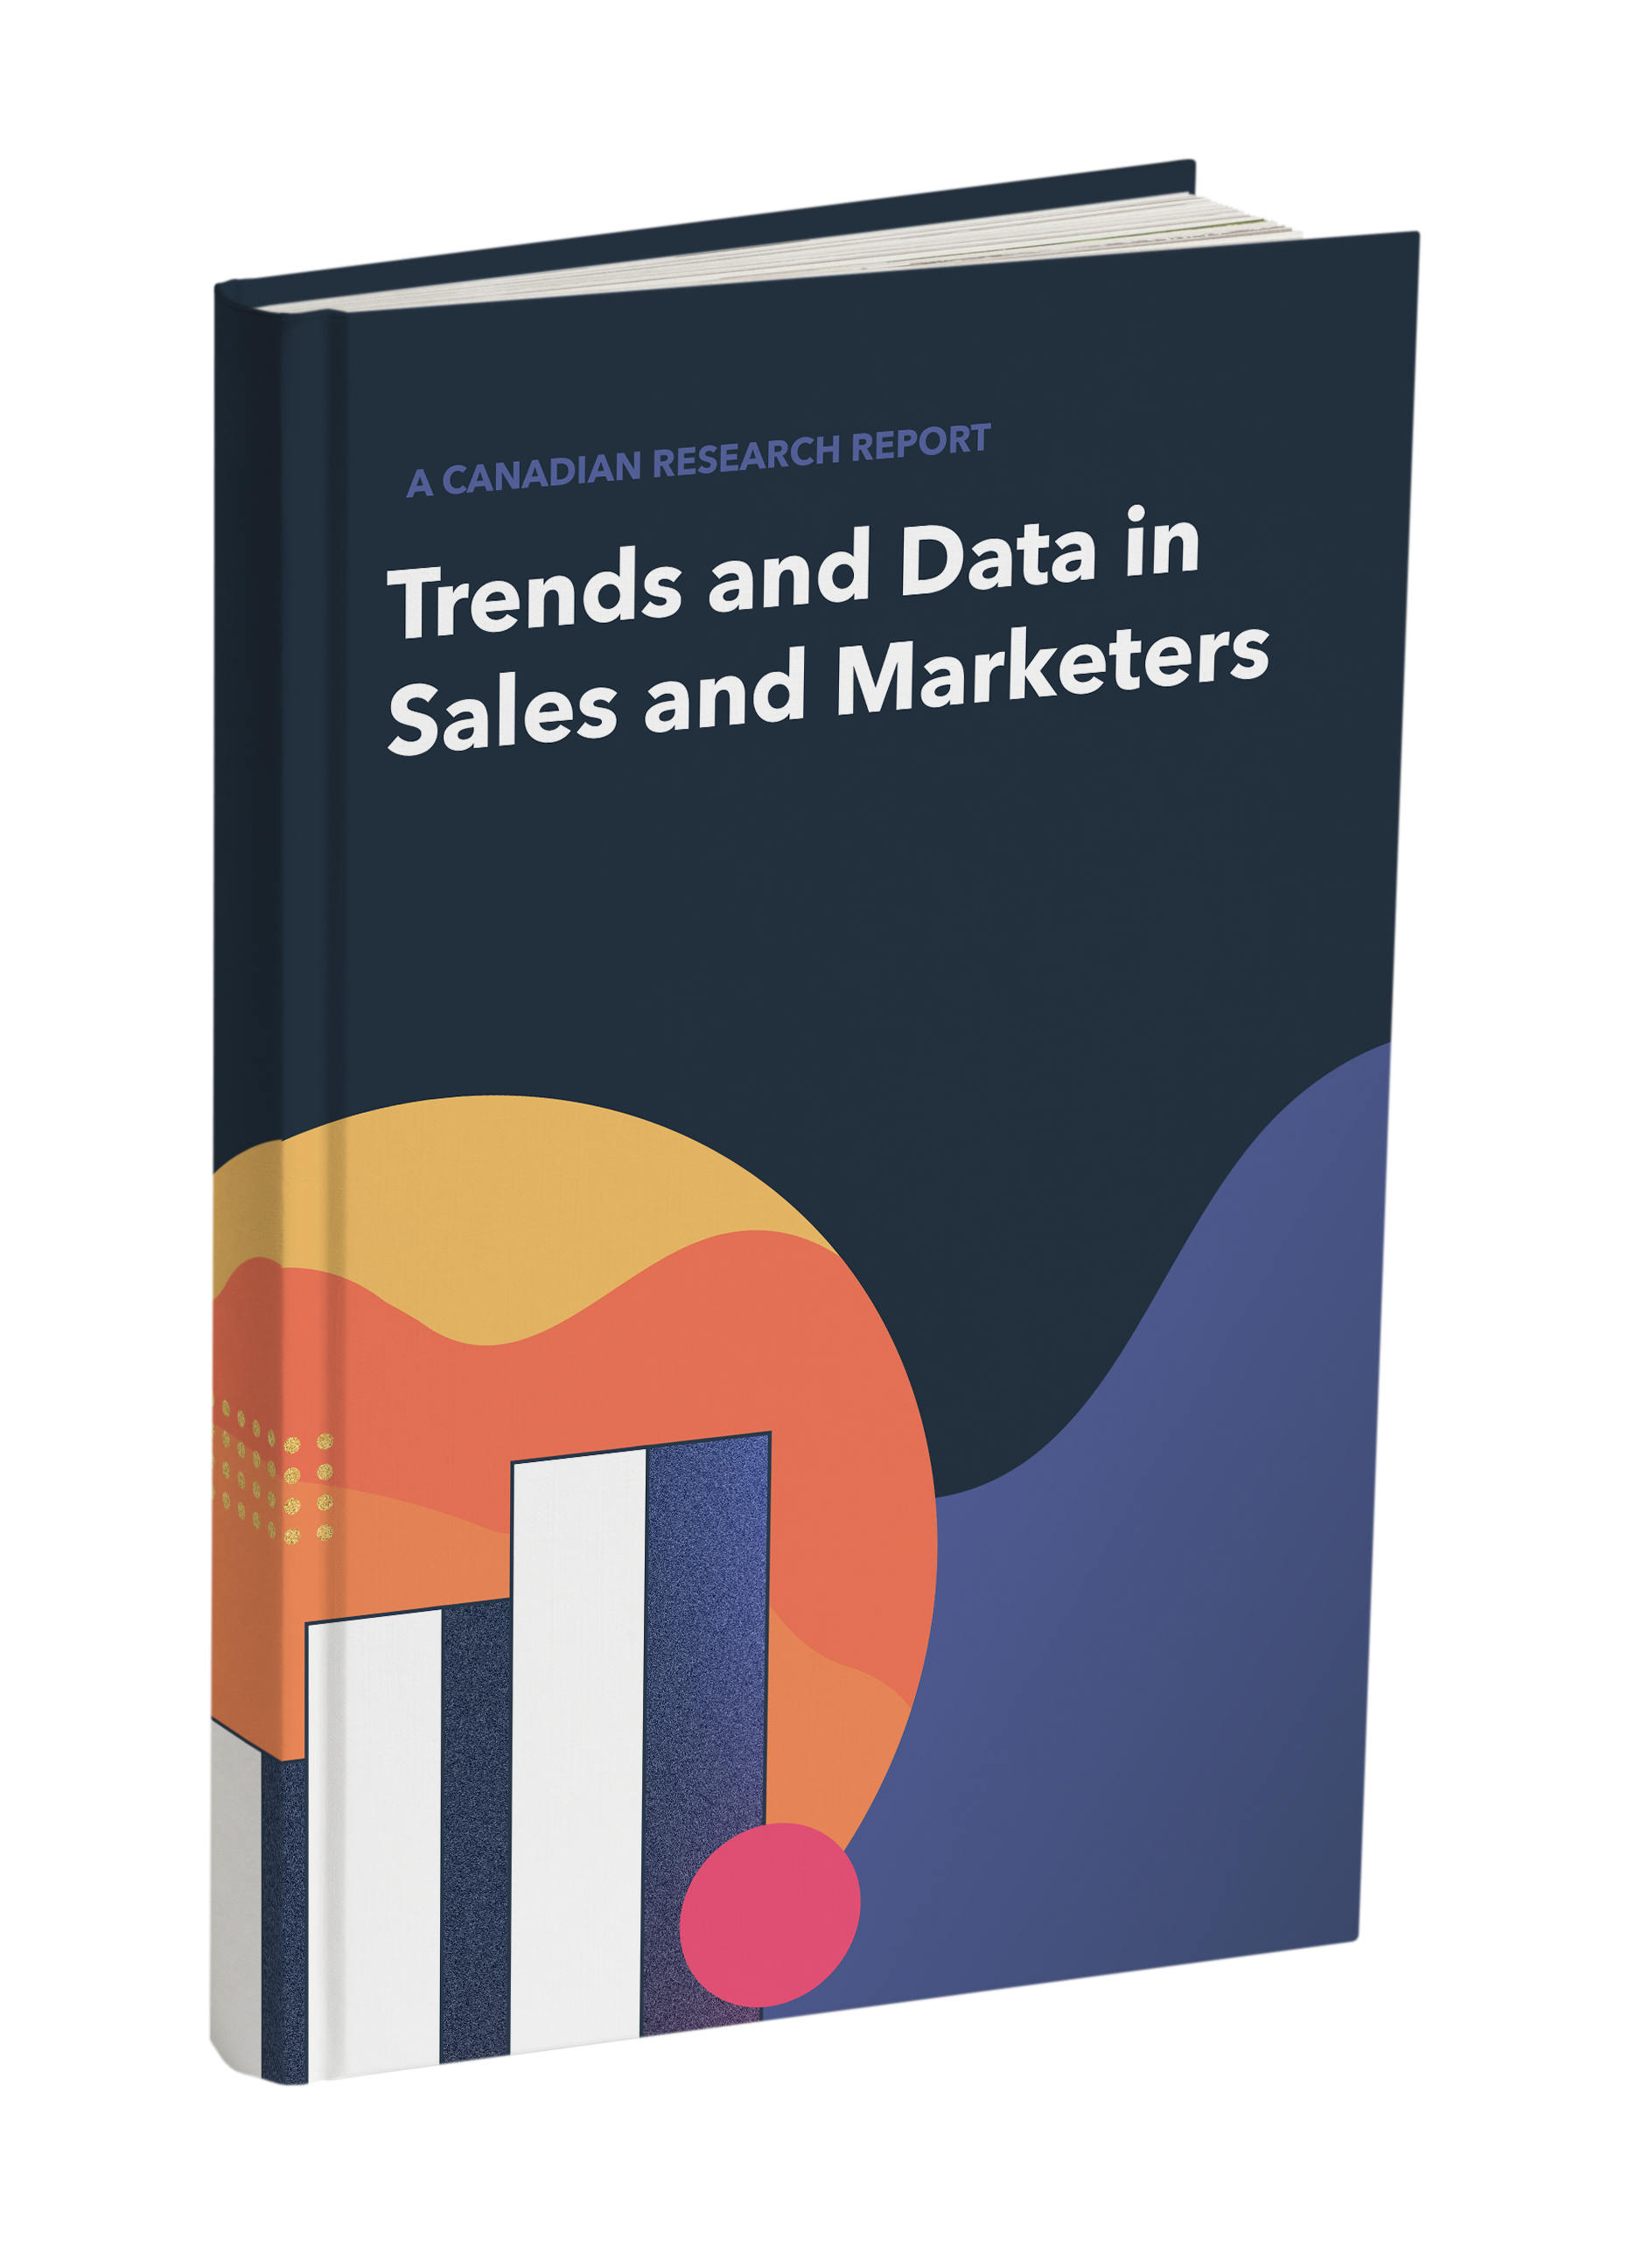 Trends and Data in Sales and Marketing